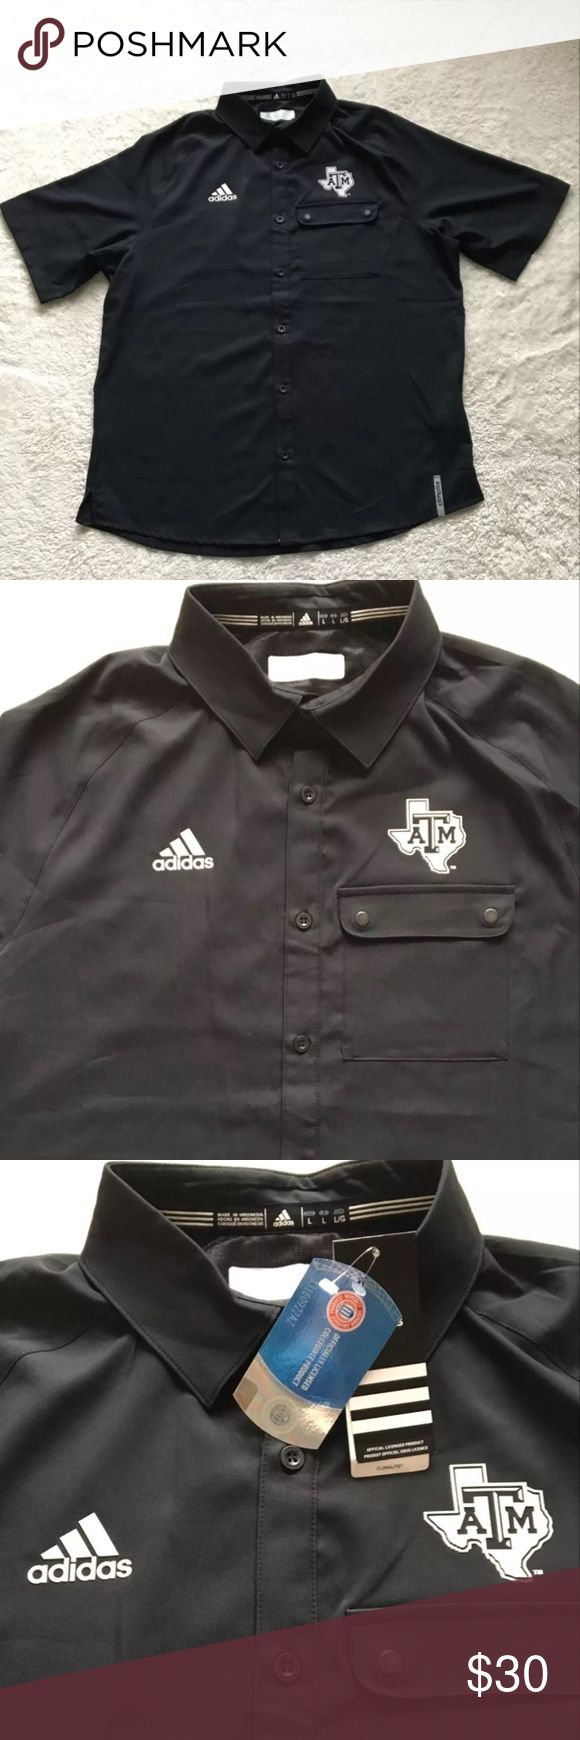 """Men's Texas A&M Aggies Button Front Shirt Sz Lg New with tags  Men's adidas Texas A&M ClimaLite short sleeve Button Up collared shirt Button pocket in the front Men's size large. It is a lightweight black shirt with a raised Adidas and Texas A&M logo on the chest. 100% polyester.  Bottom is slightly longer in the back than the front With split sides at the bottom Tags attached to the fabric tag Measurements taken from the back and are approximate: Shoulder to bottom hem: 30.5"""" Armpit to…"""